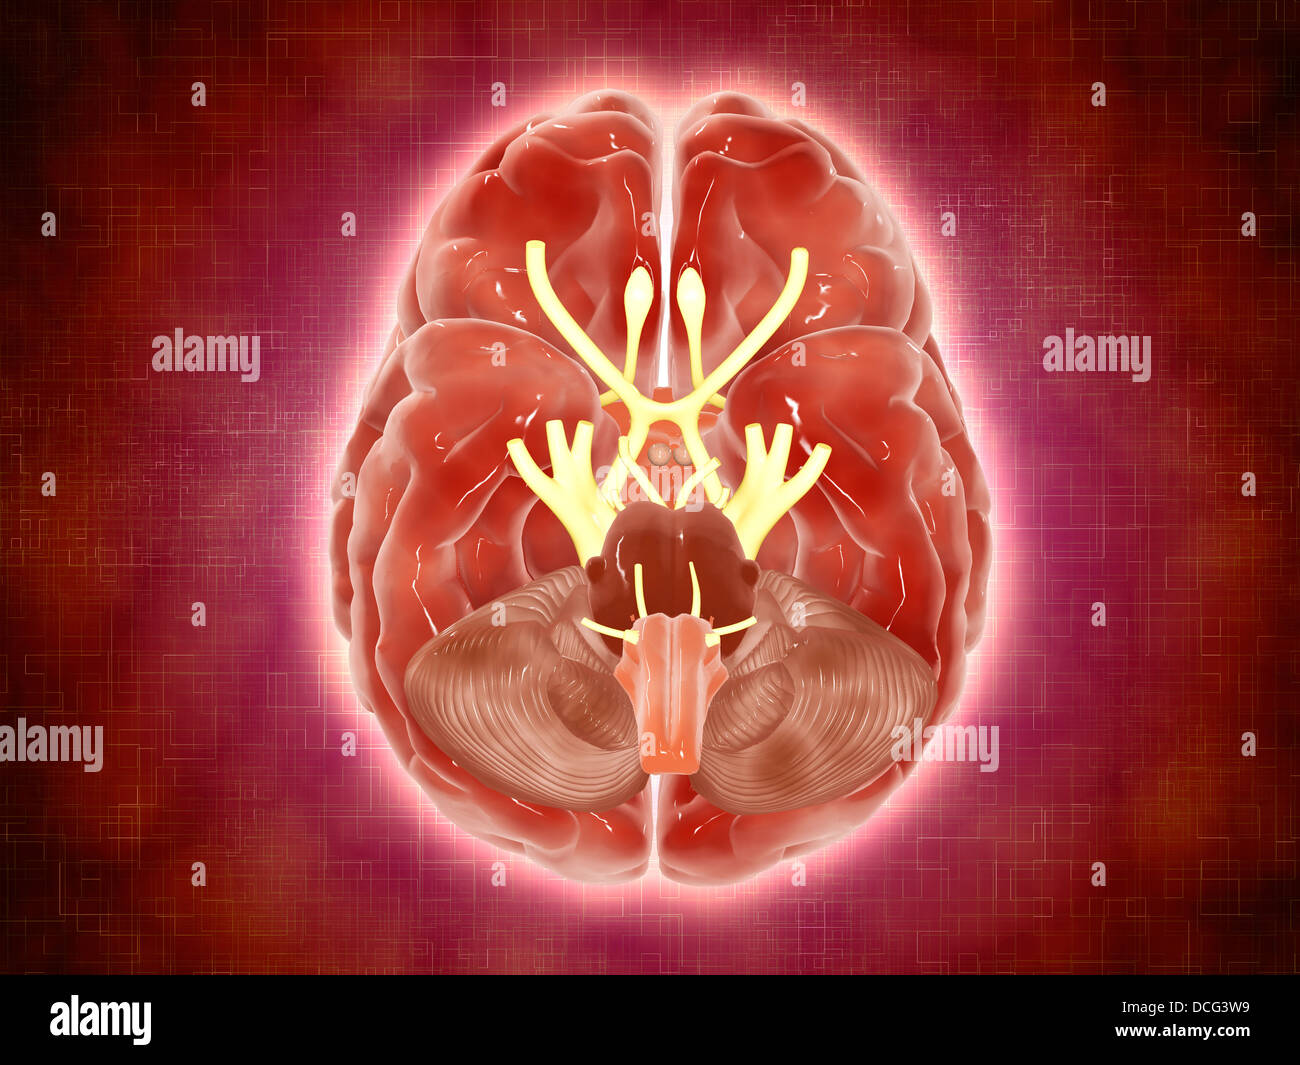 Conceptual image of cranial nerves in human brain. - Stock Image